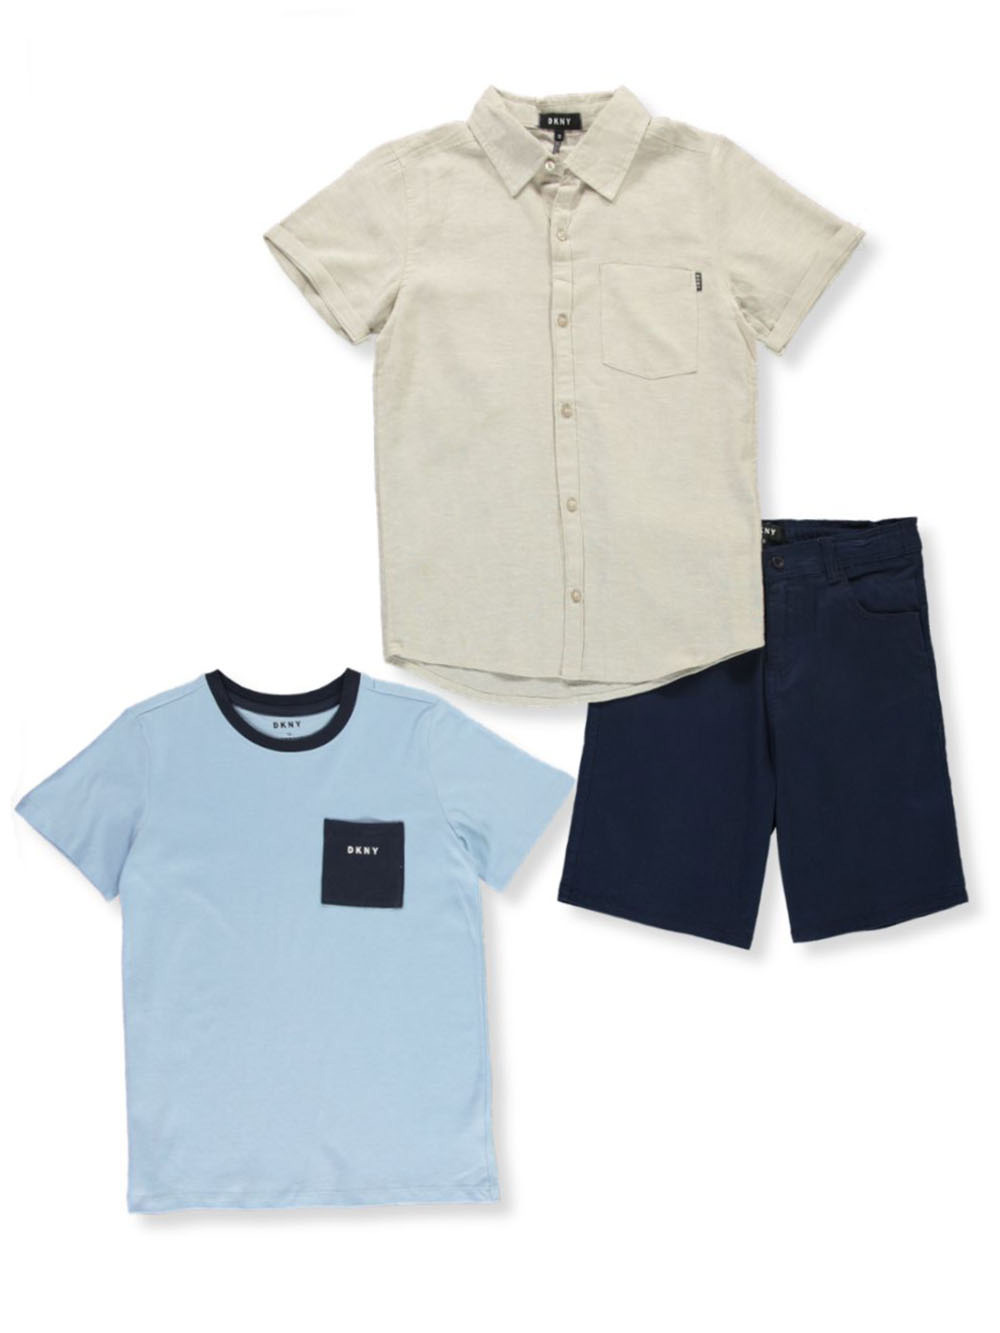 Boys' Casual 3-Piece Shorts Set Outfit